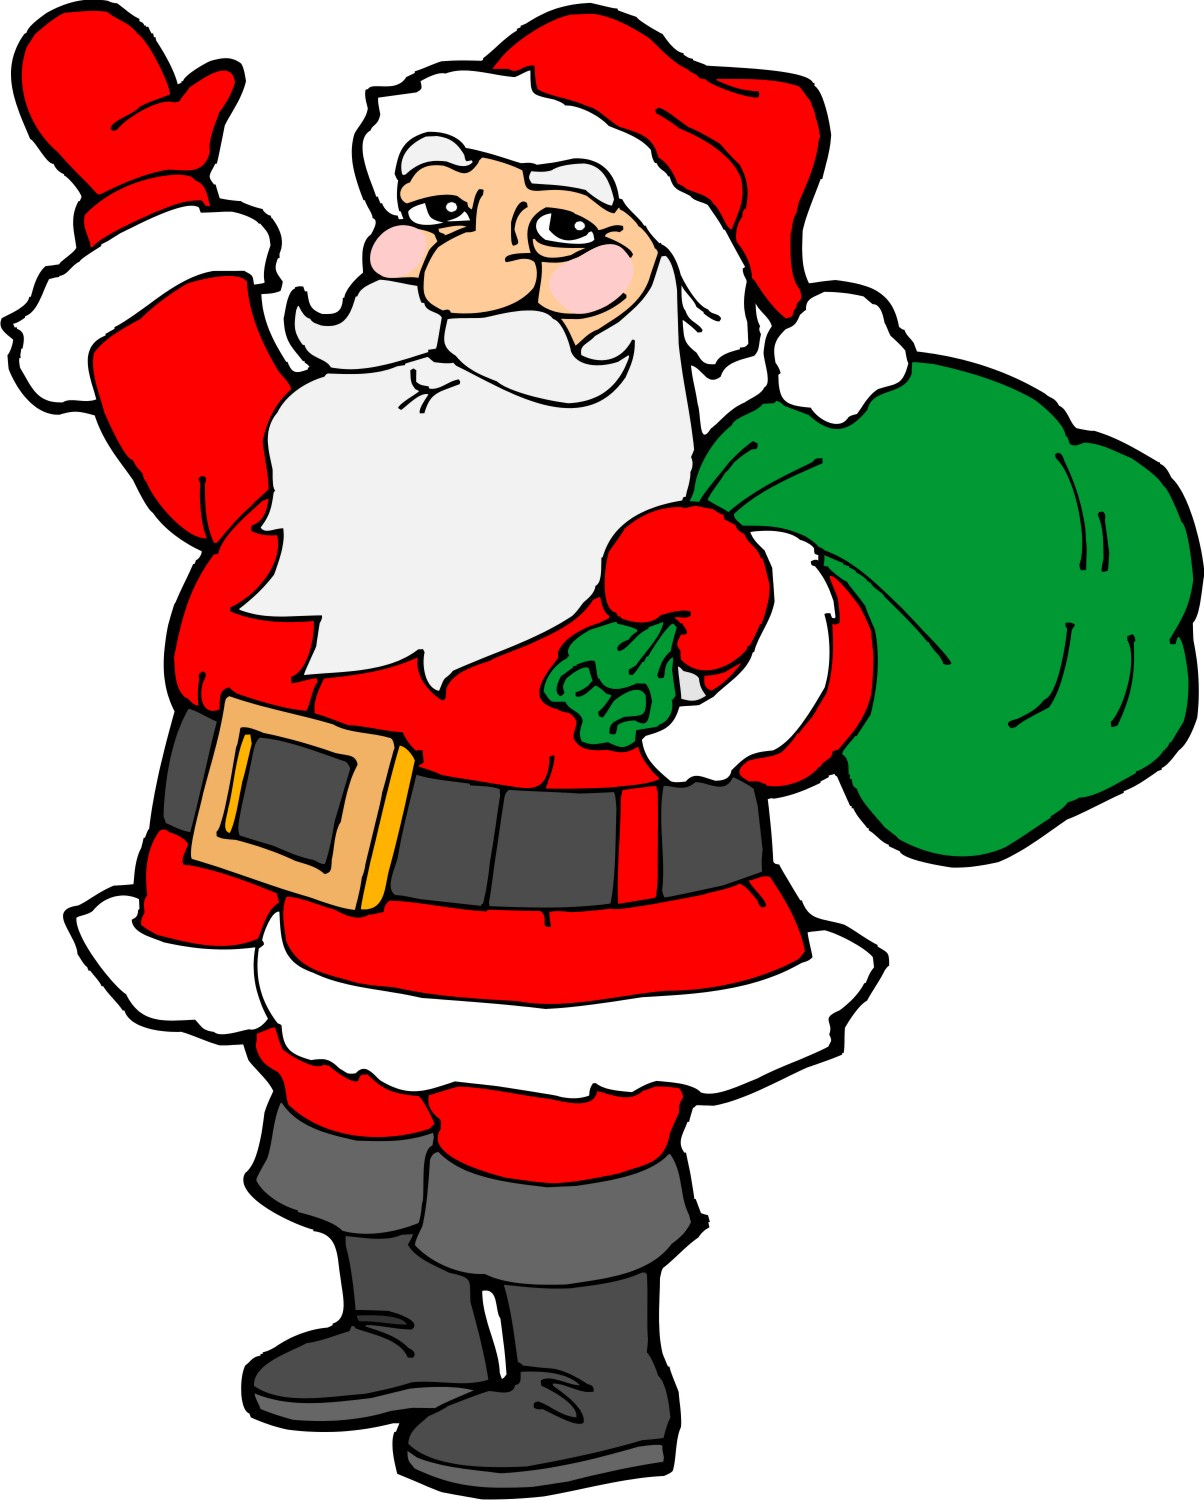 Santa clipart easy. Drawing at getdrawings com